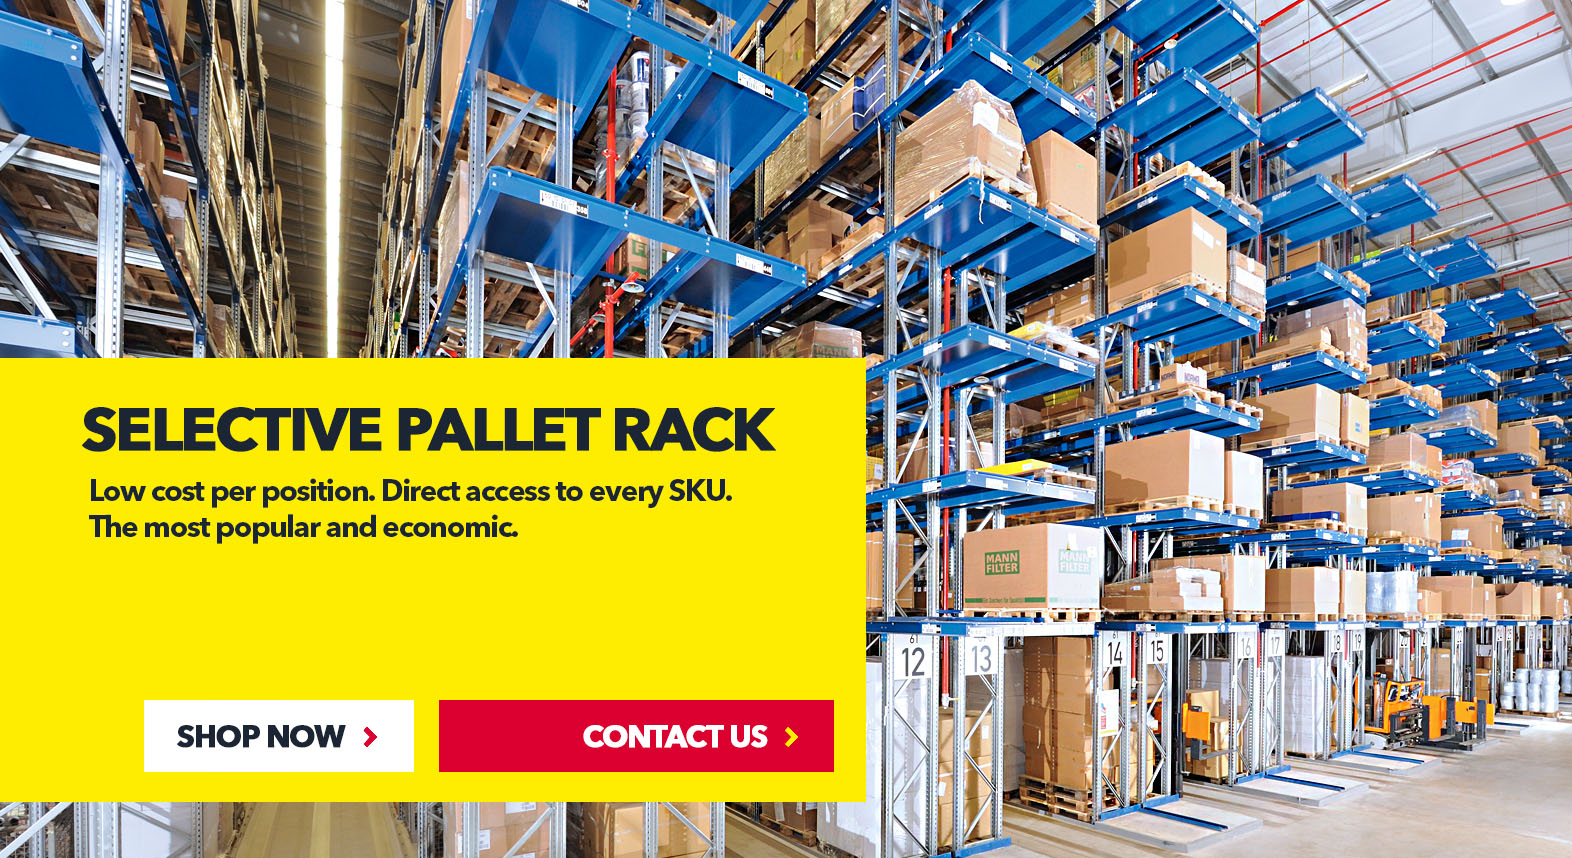 Selective Pallet Rack by SSI Schaefer USA Download Guide, Watch Video, Contact Us. www.chaefershelving.com